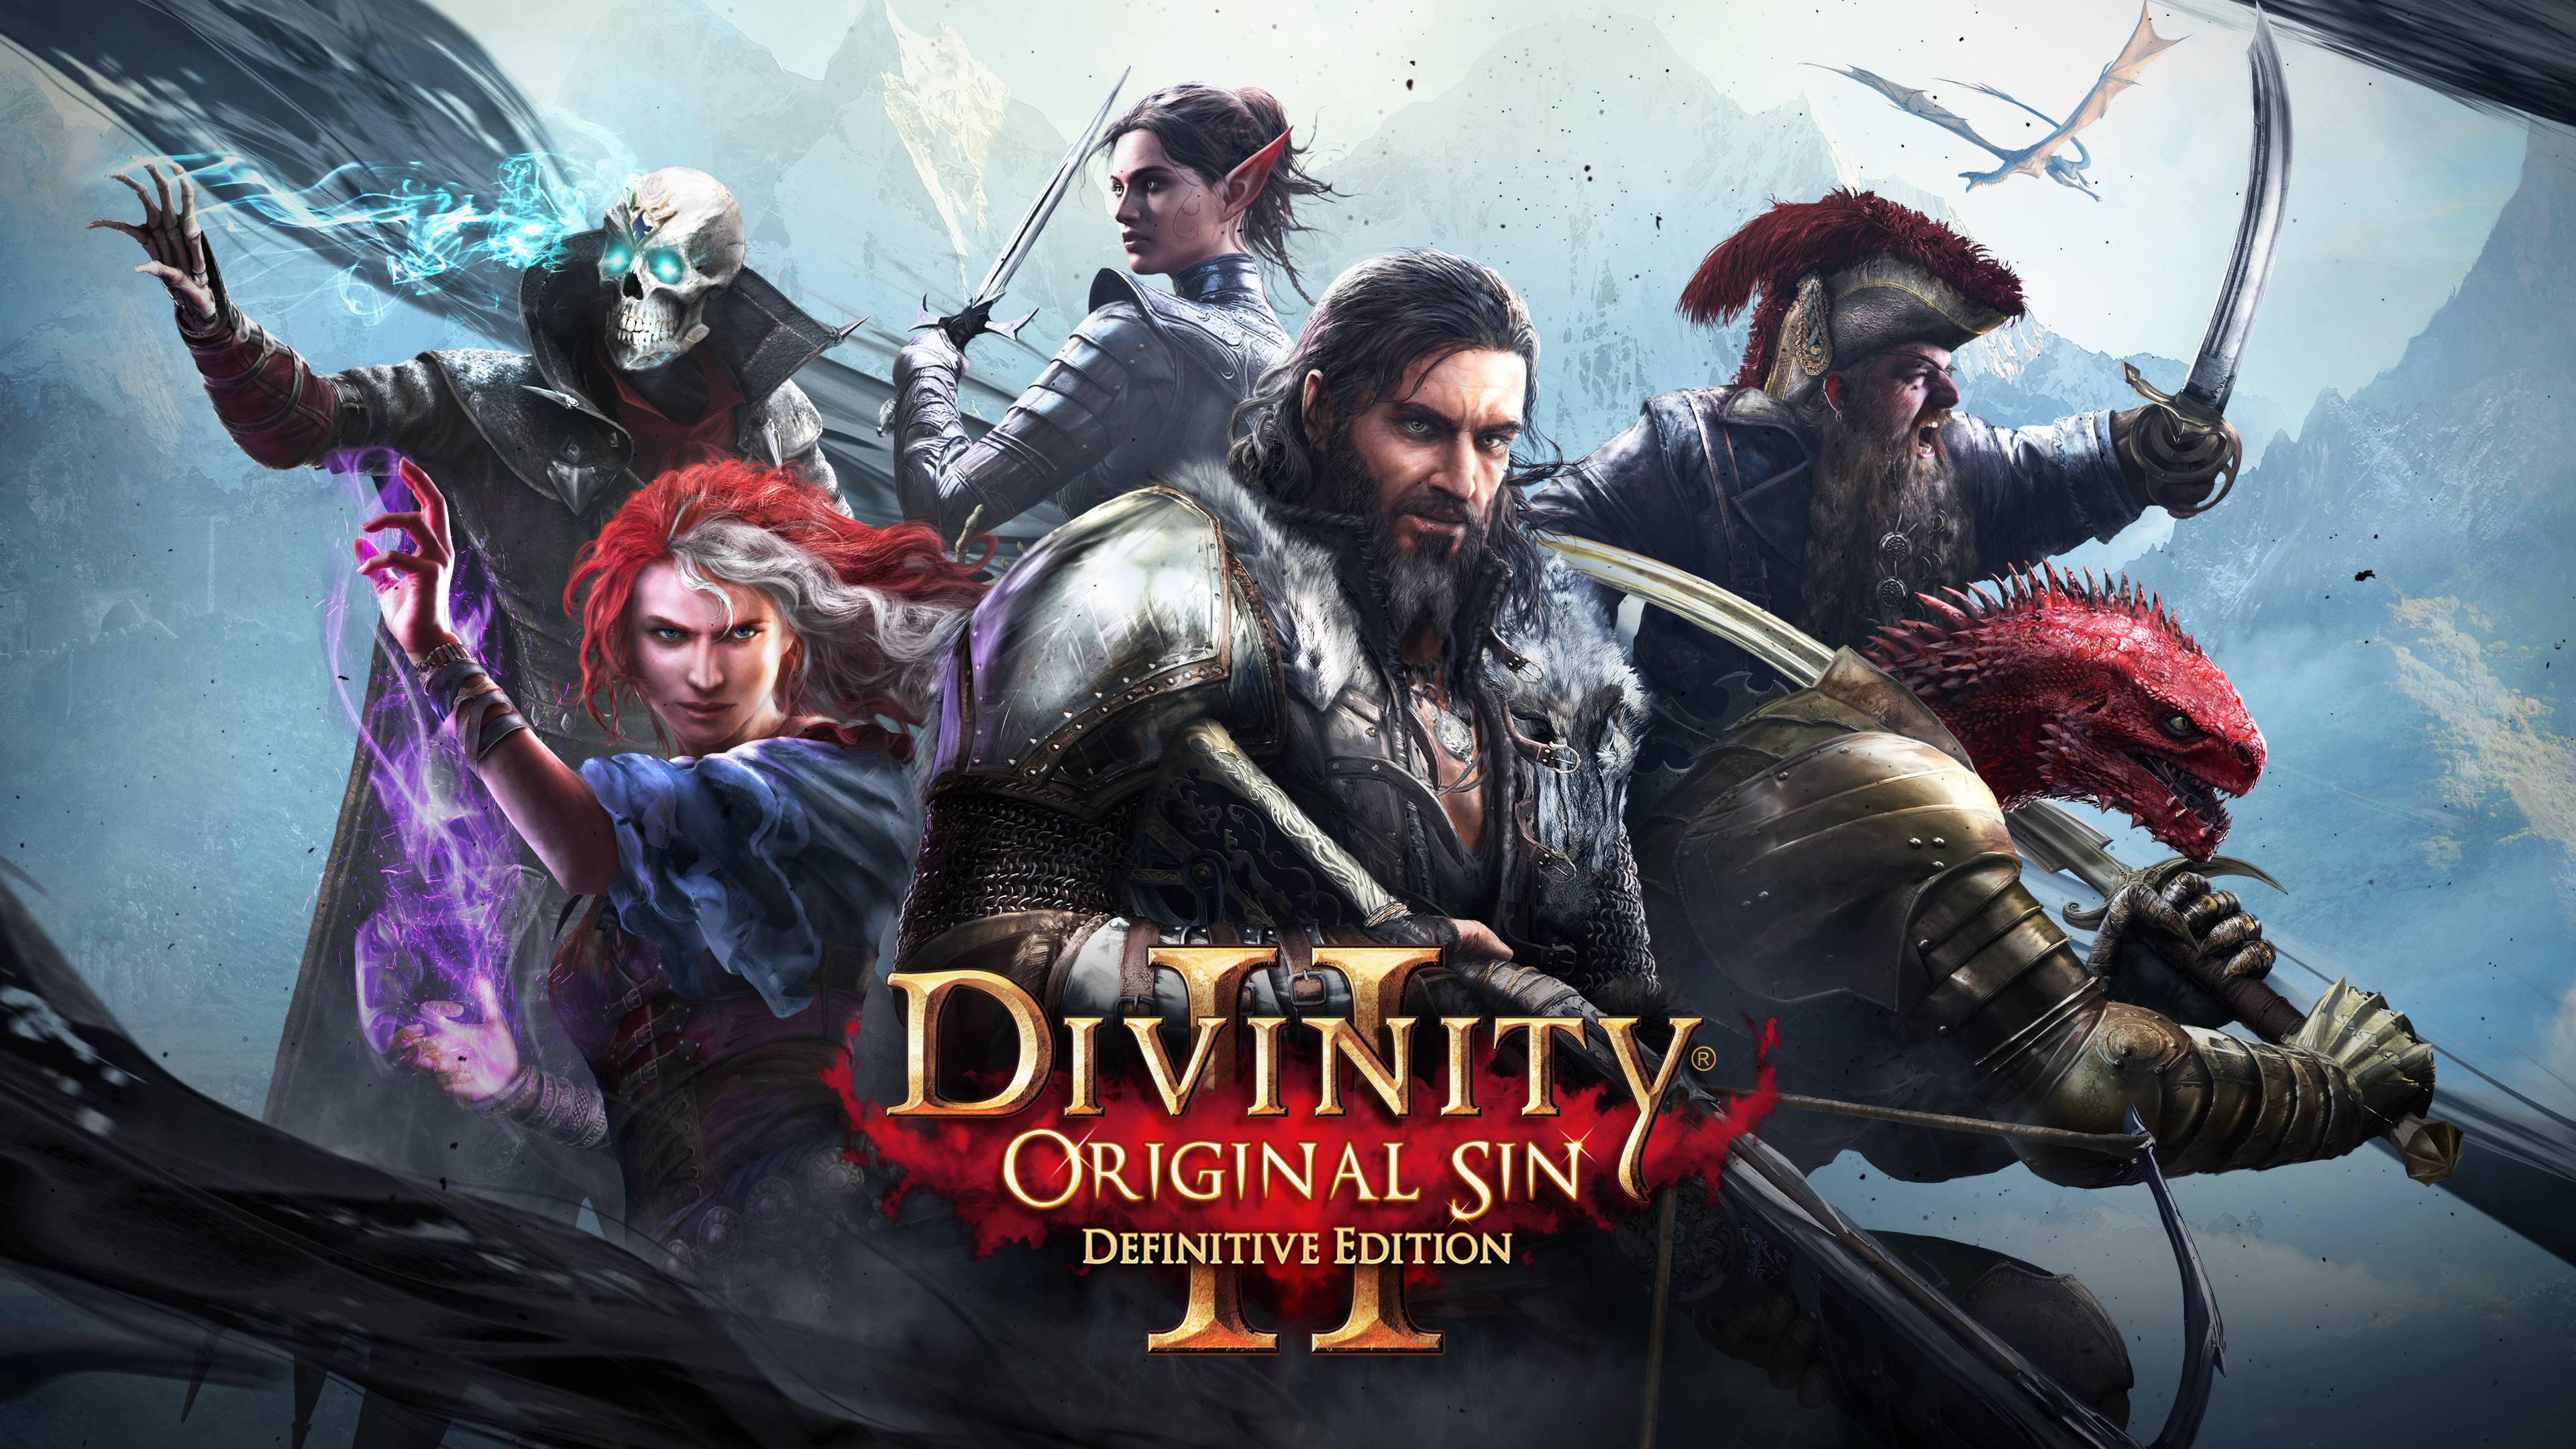 Divinity Original Sin 2 4k, HD Games, 4k Wallpapers, Images ...